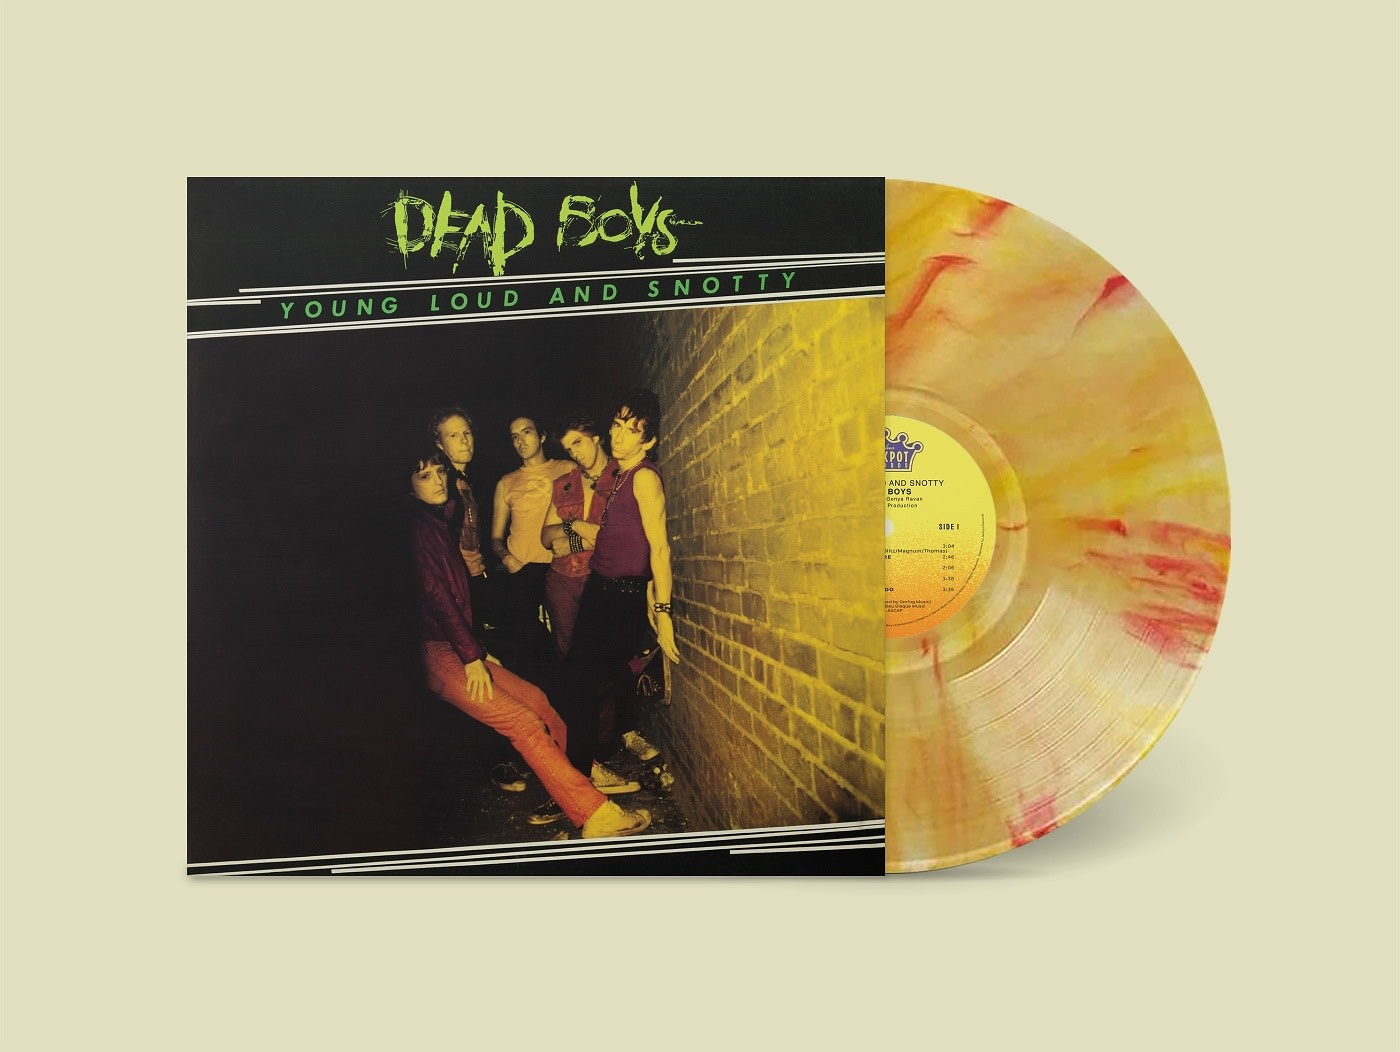 Jackpot Records Dead Boys - Young, Loud and Snotty